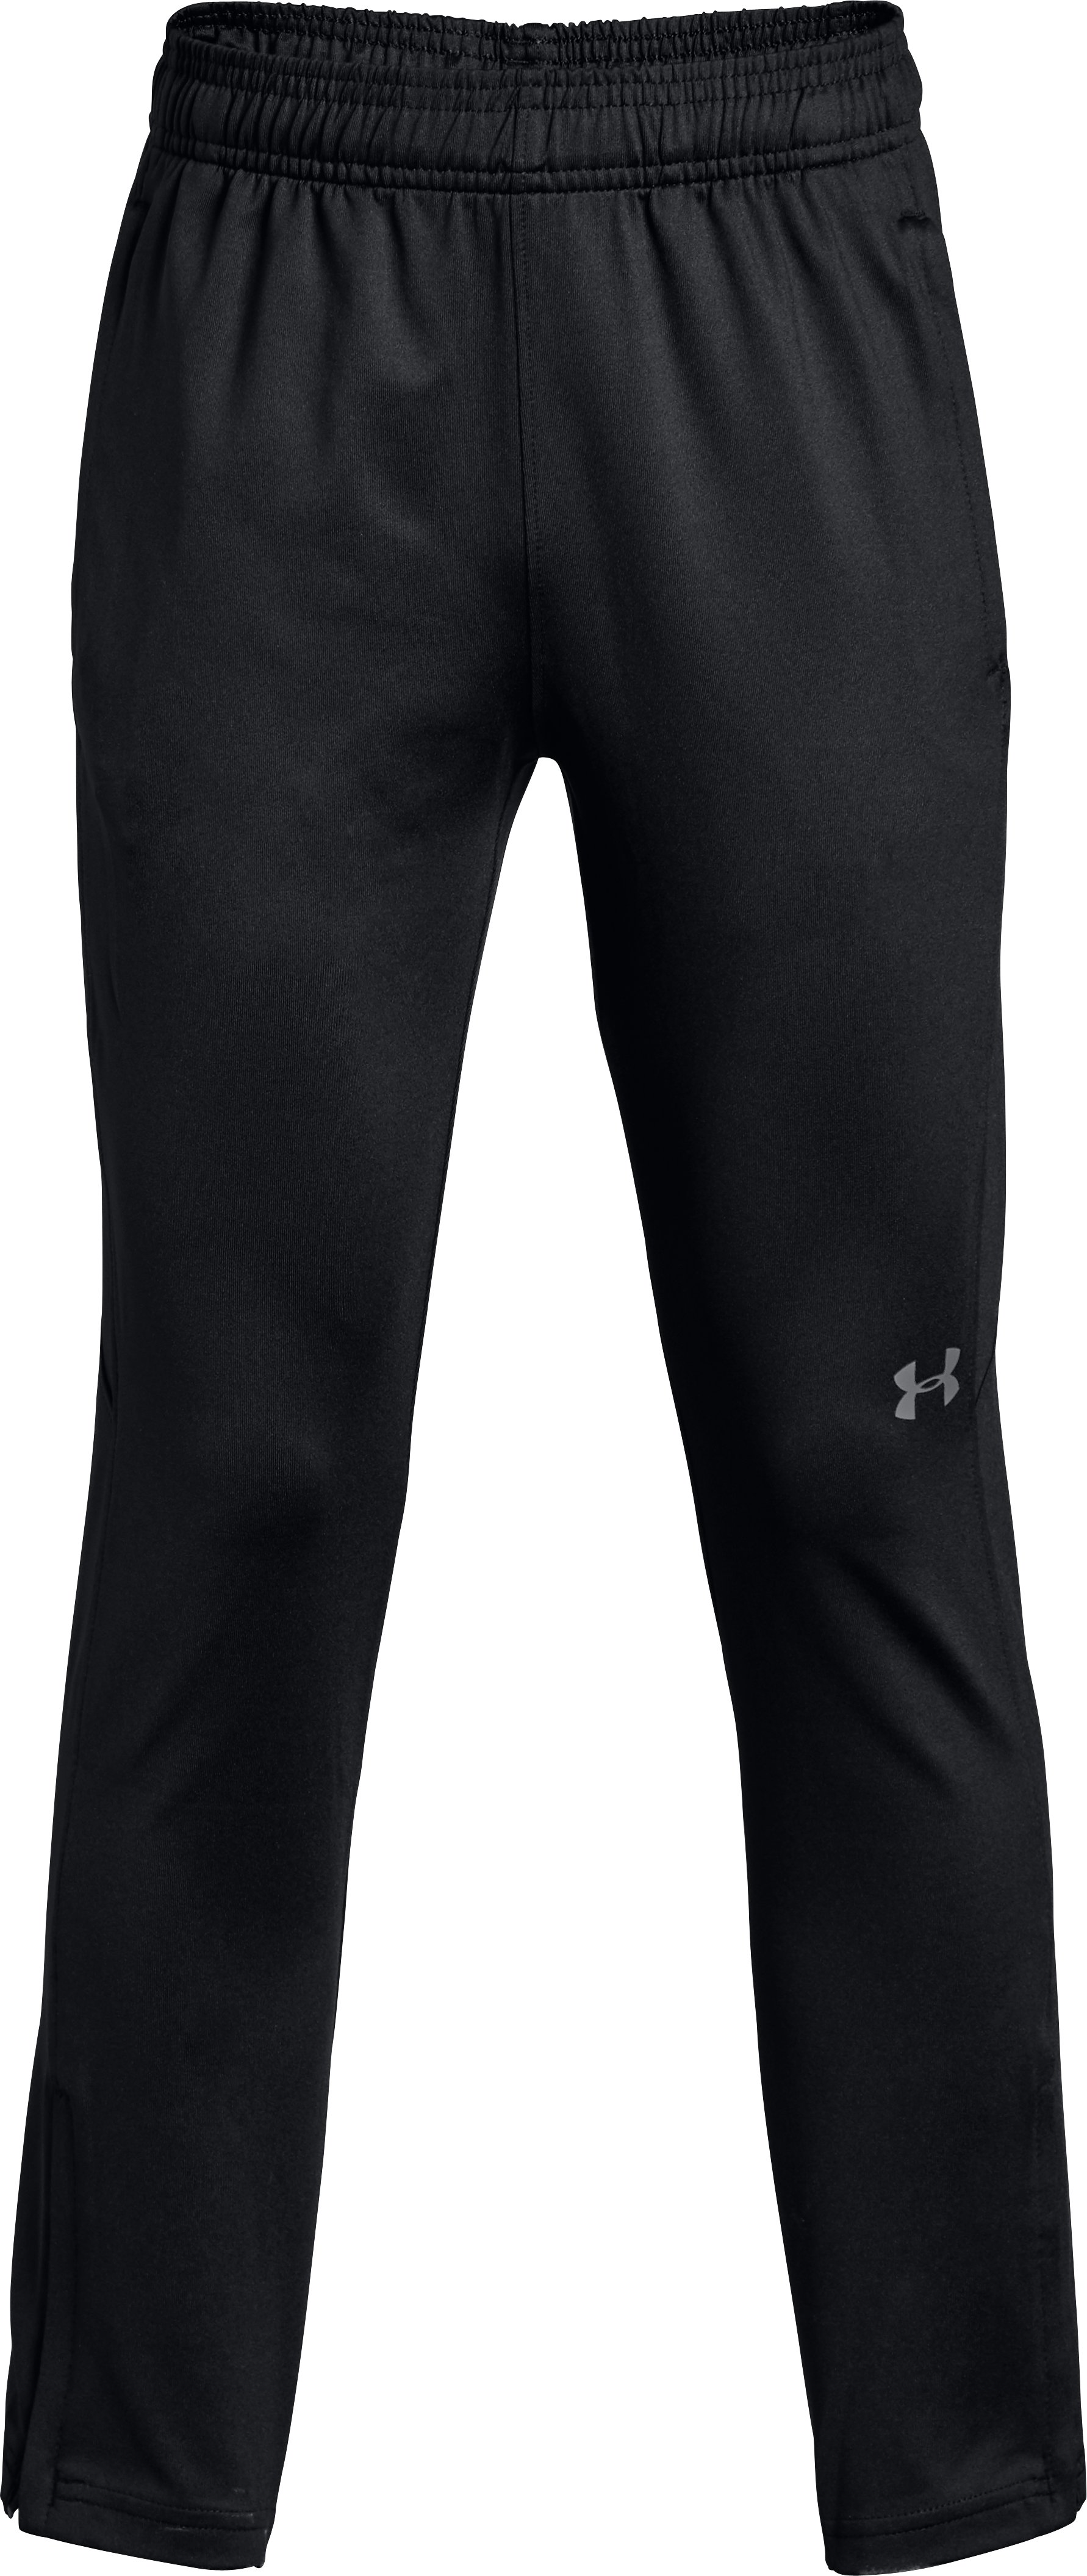 Boys' UA Challenger II Training Pants, Black